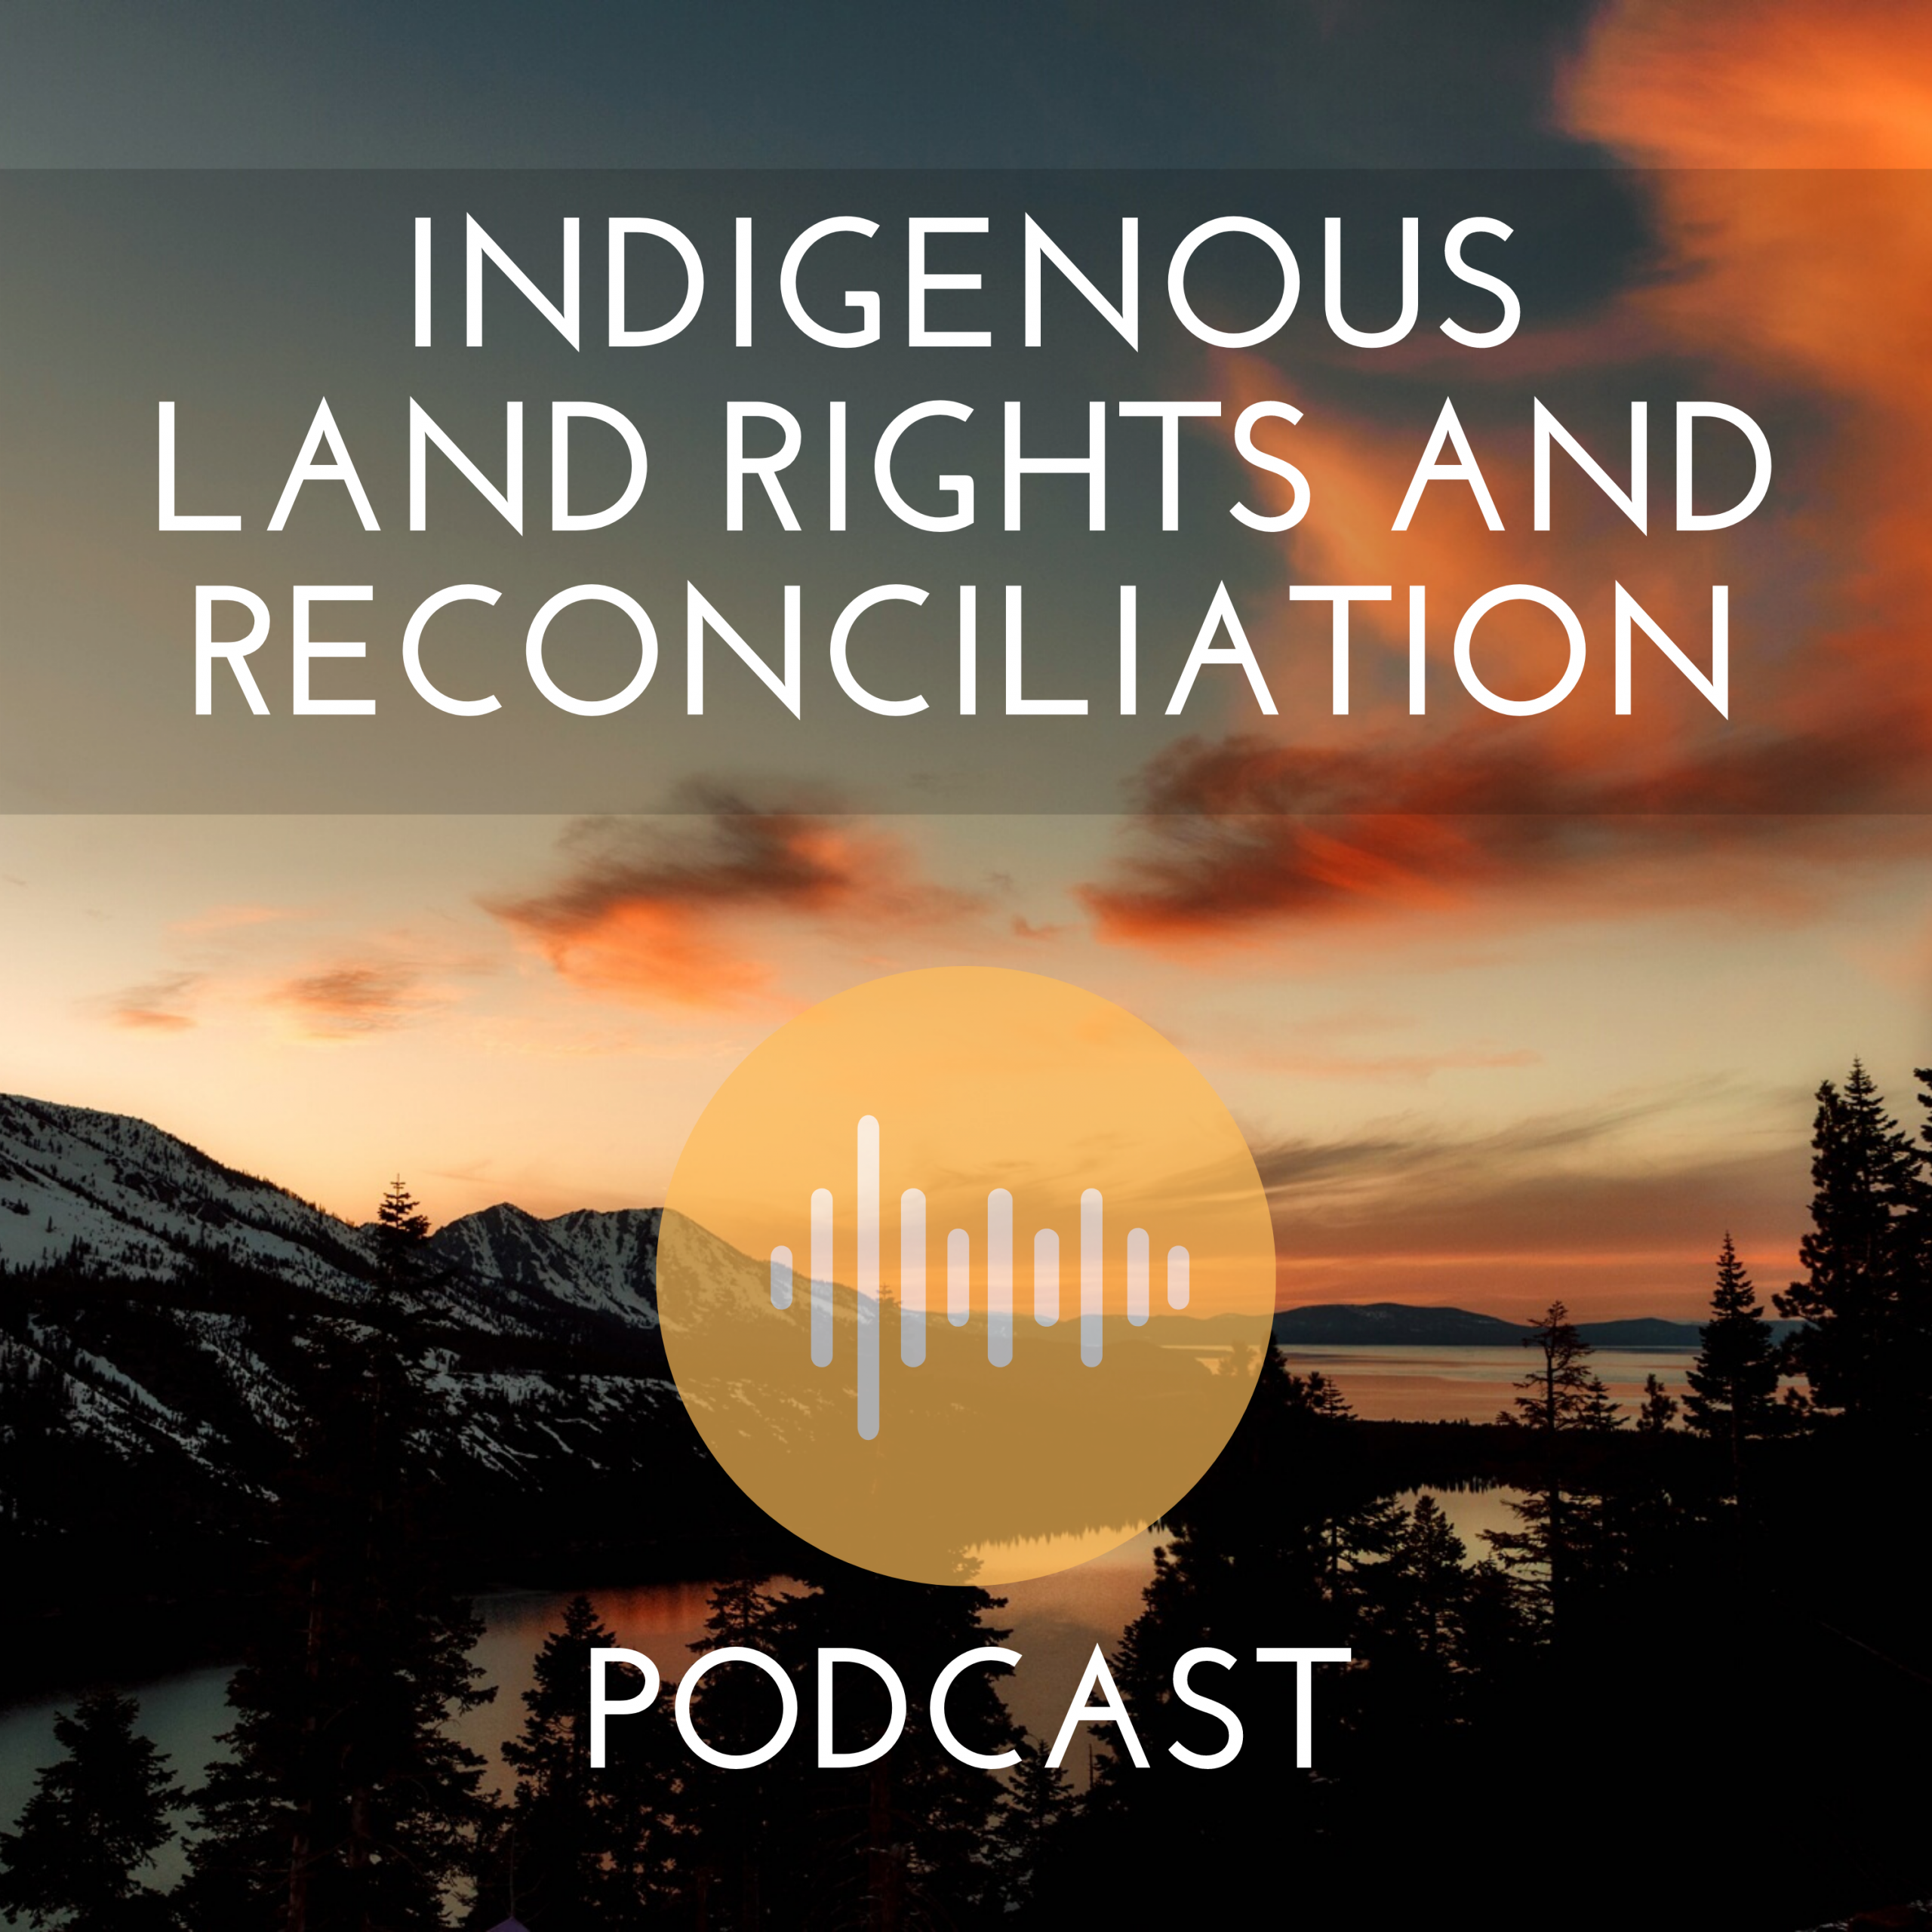 Indigenous Land Rights and Reconciliation Podcast – CFRC Podcast Network